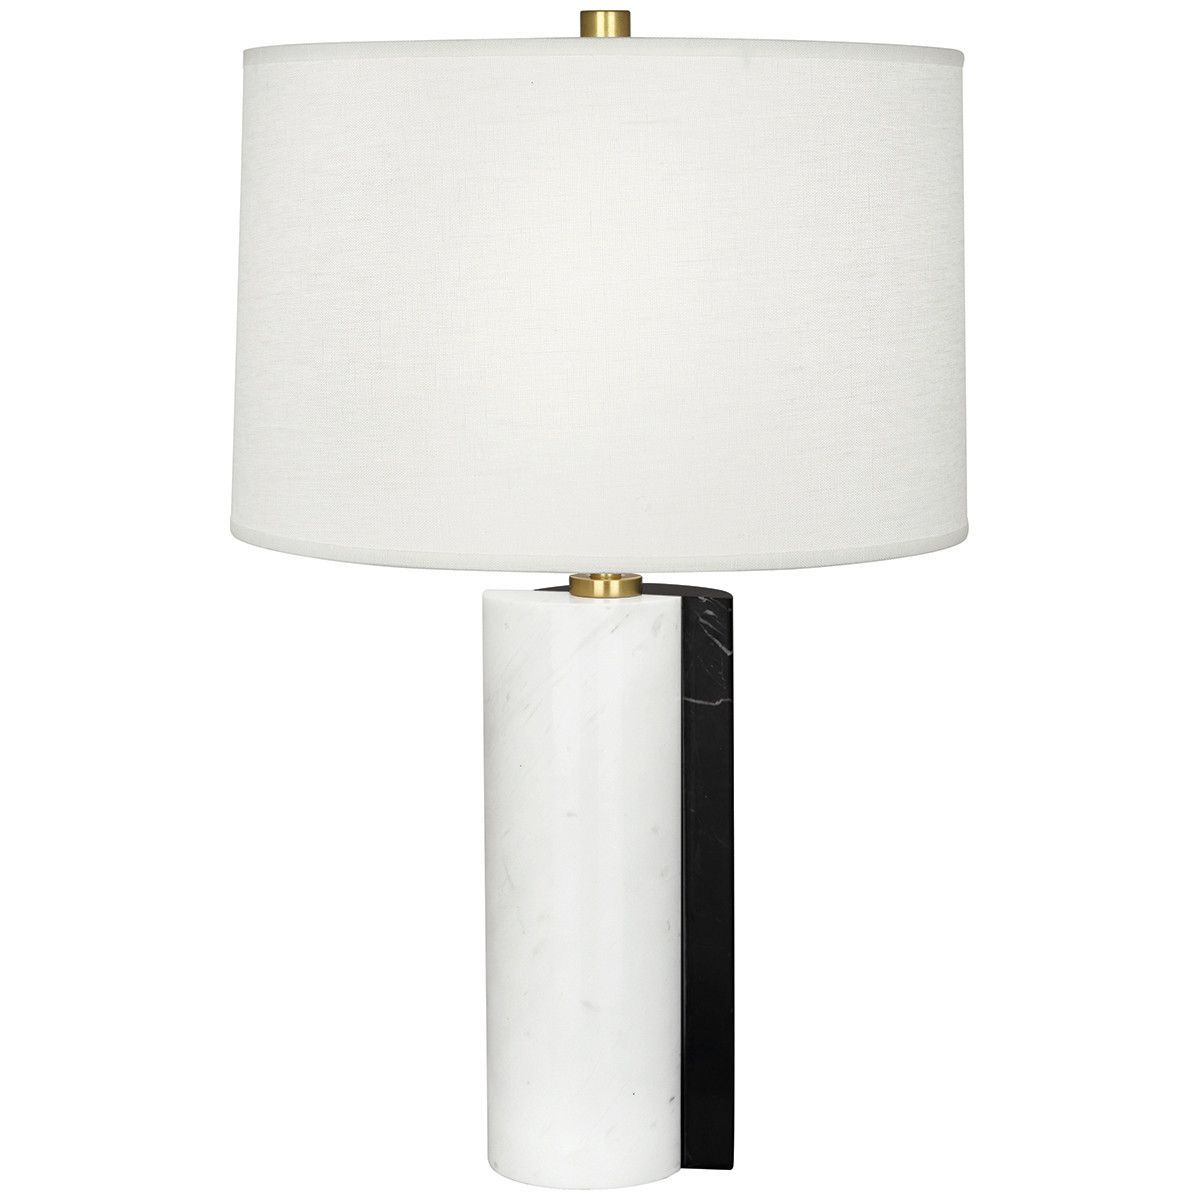 Robert Abbey Jonathan Adler Canaan Table Lamp